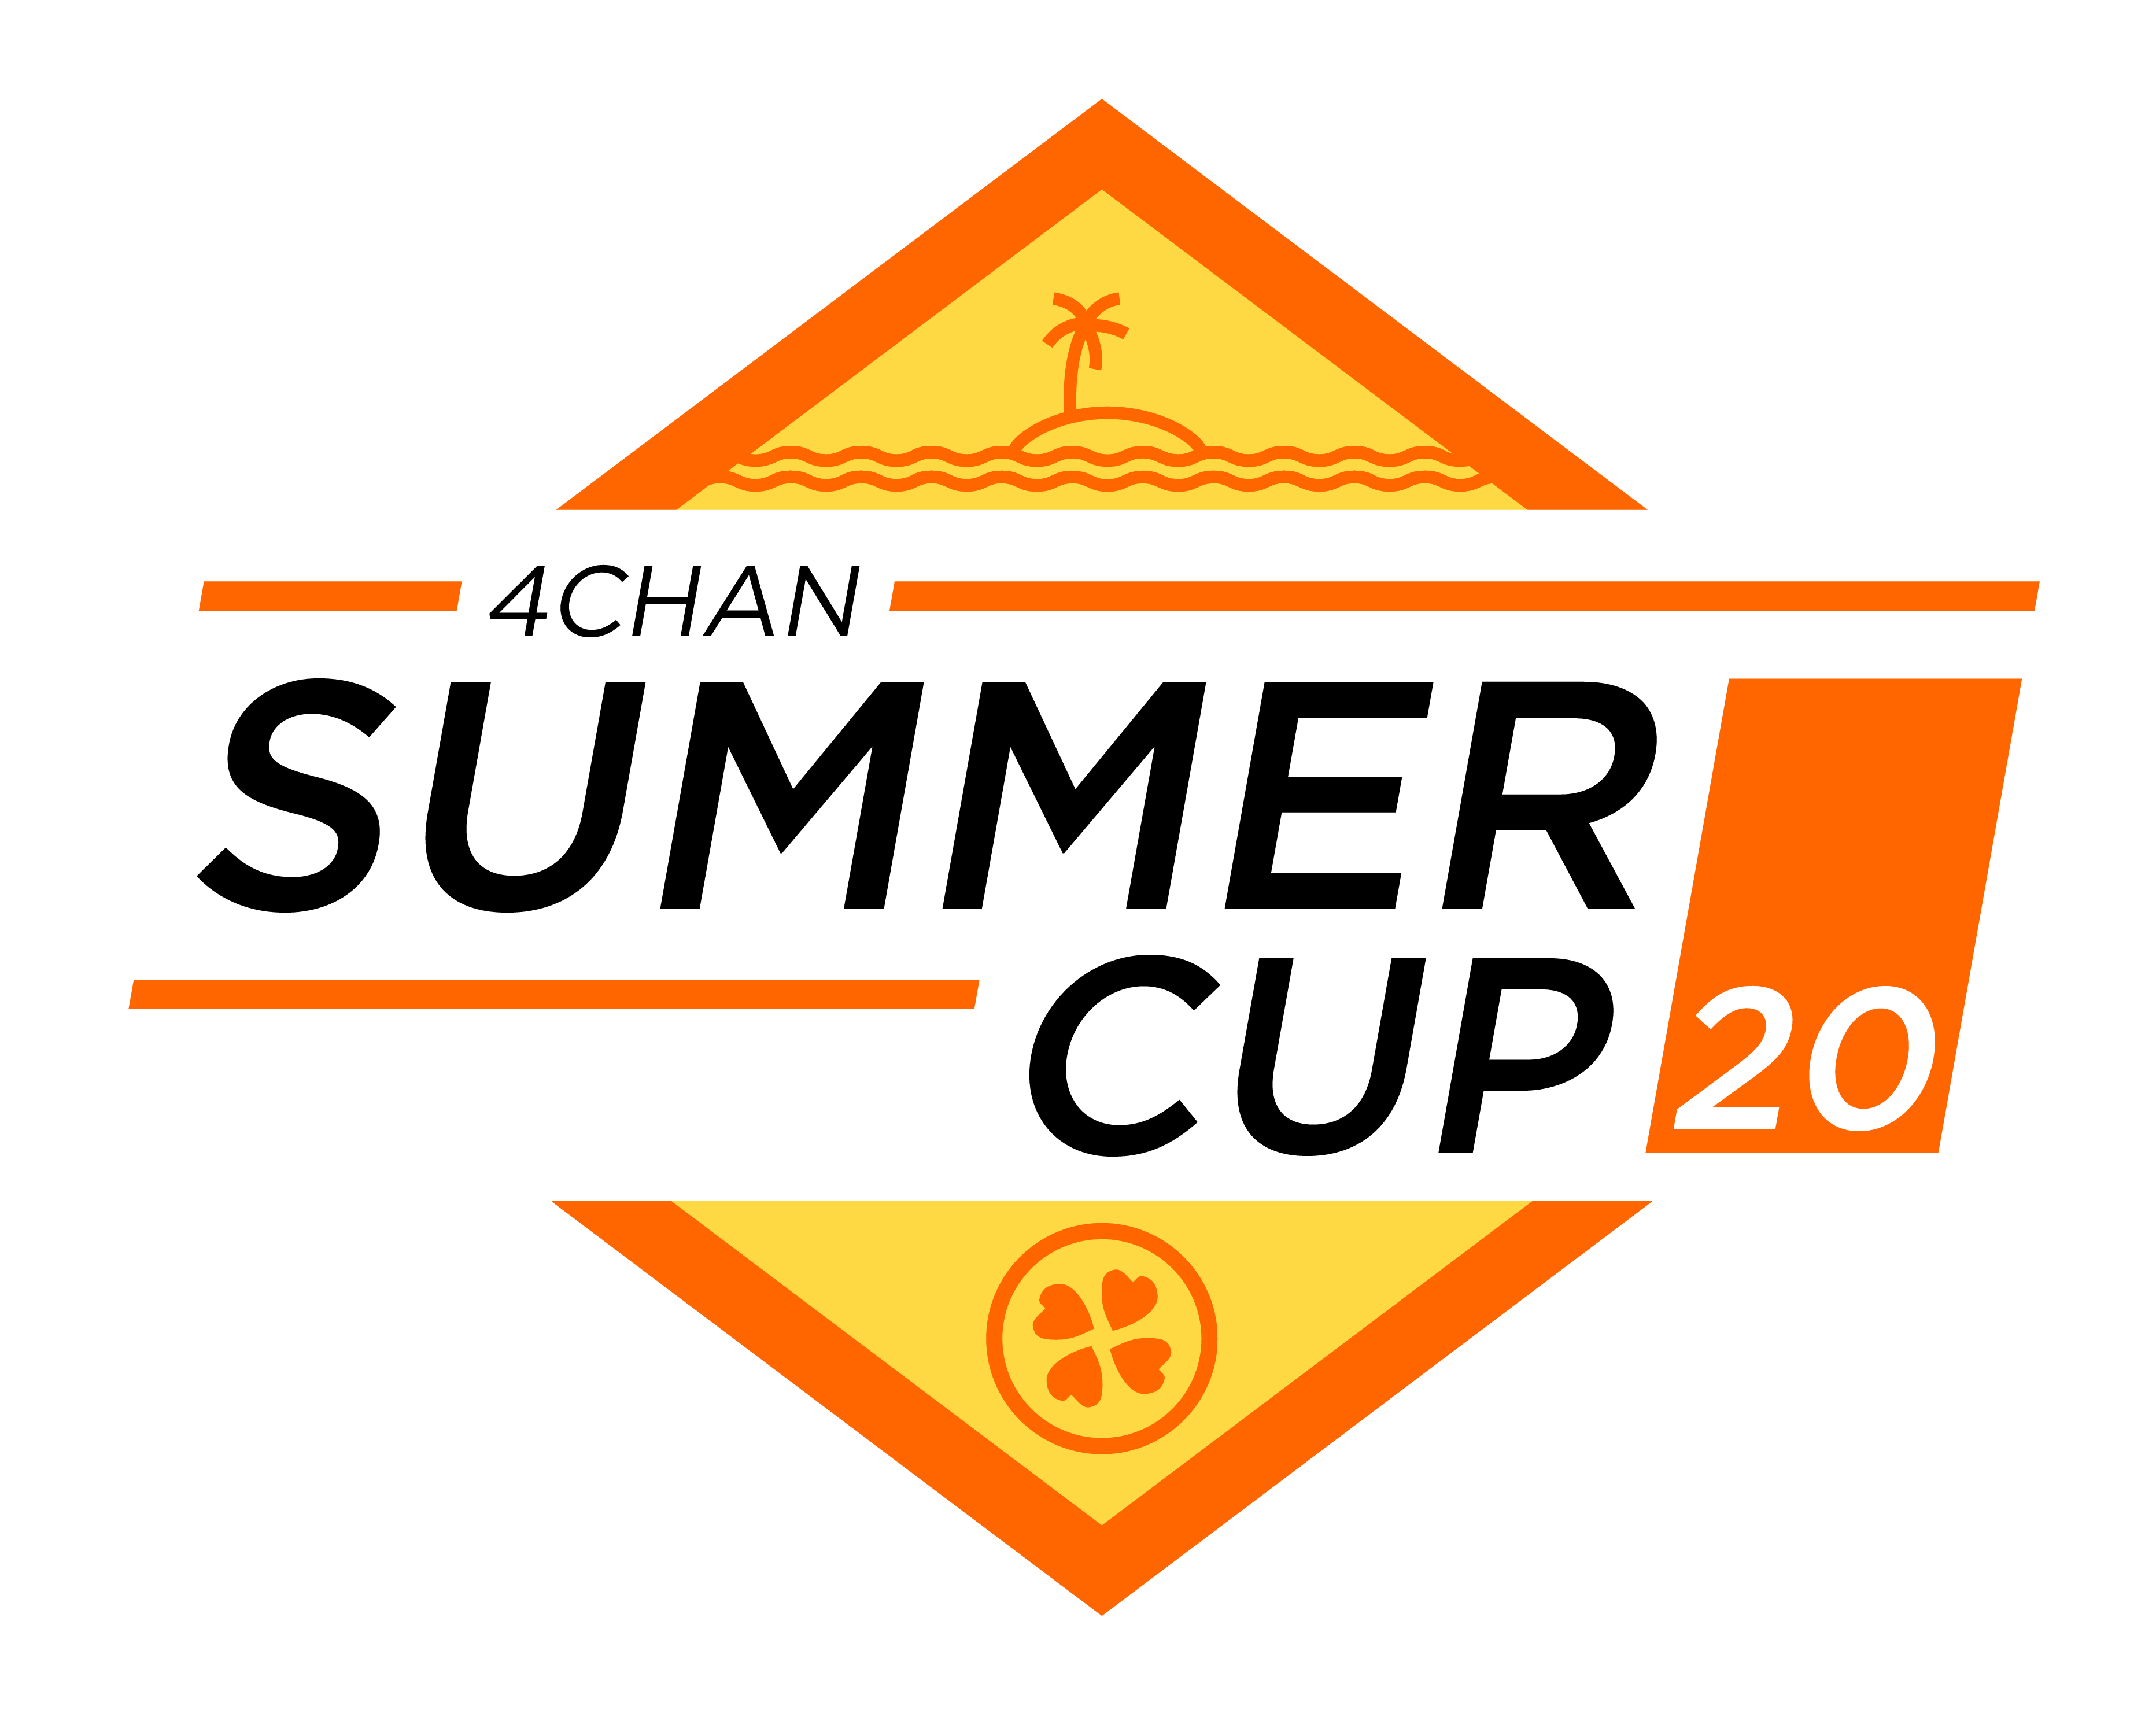 2020 4chan Summer Cup